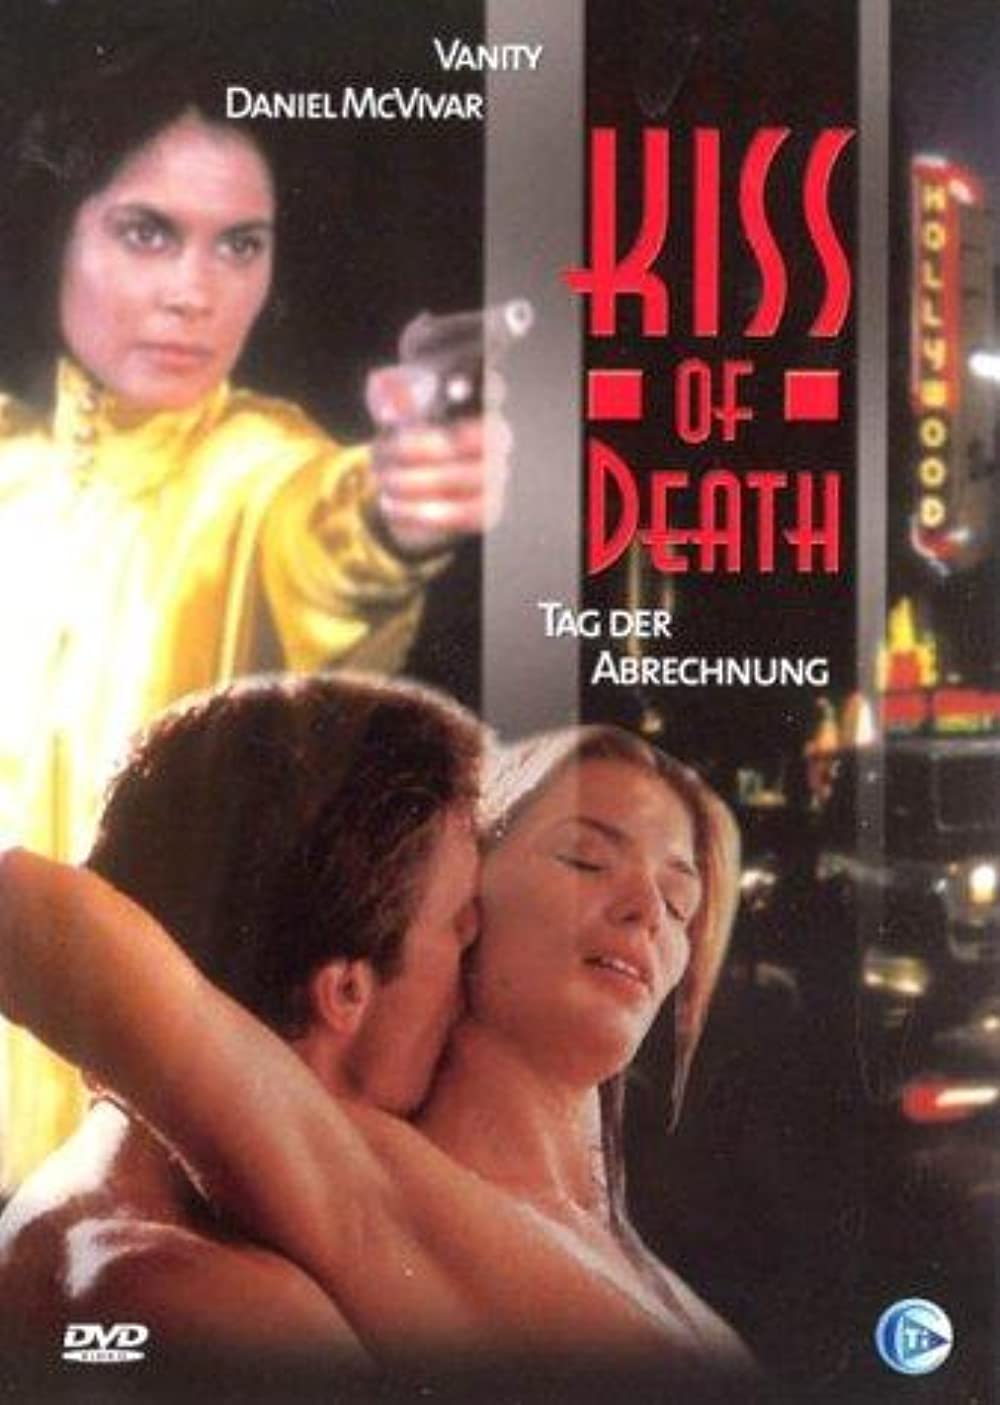 18+ Kiss of Death 1997 Hindi Dual Audio 720p UNRATED DVDRip 1GB x264 AAC